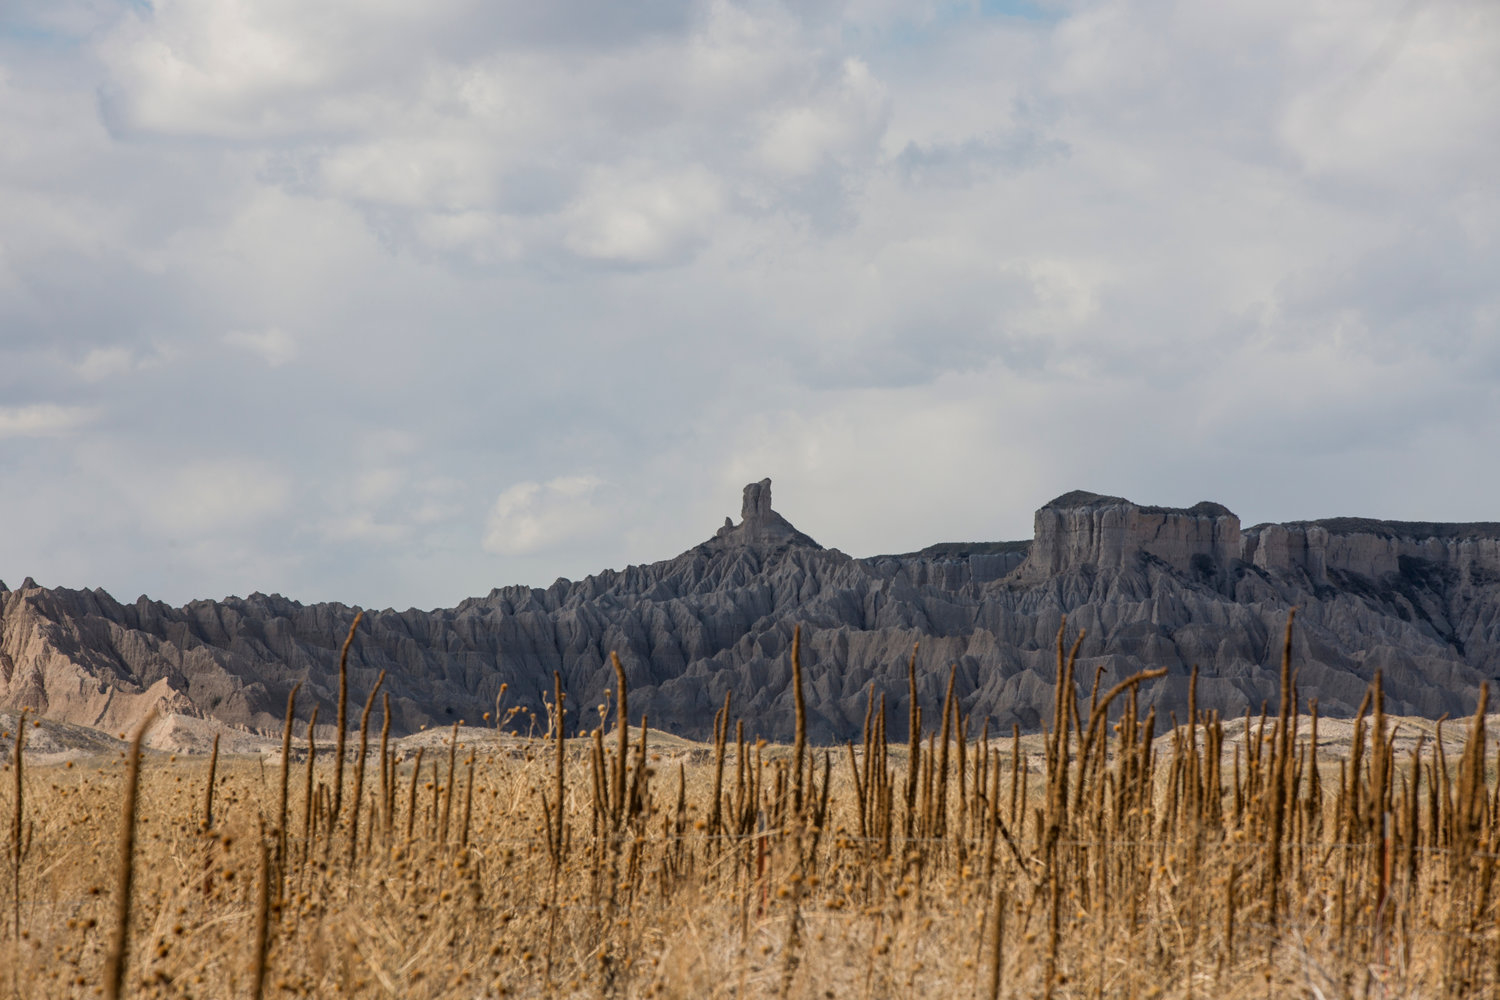 A view from the reservation side of the road into the views of Badlands National Park as seen on Wednesday, April 5, 2017, along Cuny Table Road on the Pine Ridge Indian Reservation in South Dakota. Without national funding like that from the National Endowment for the Arts, art and cultural programs in sparsely populated rural states like South Dakota are at risk of disappearing altogether. (Kristina Barker for The New York Times)